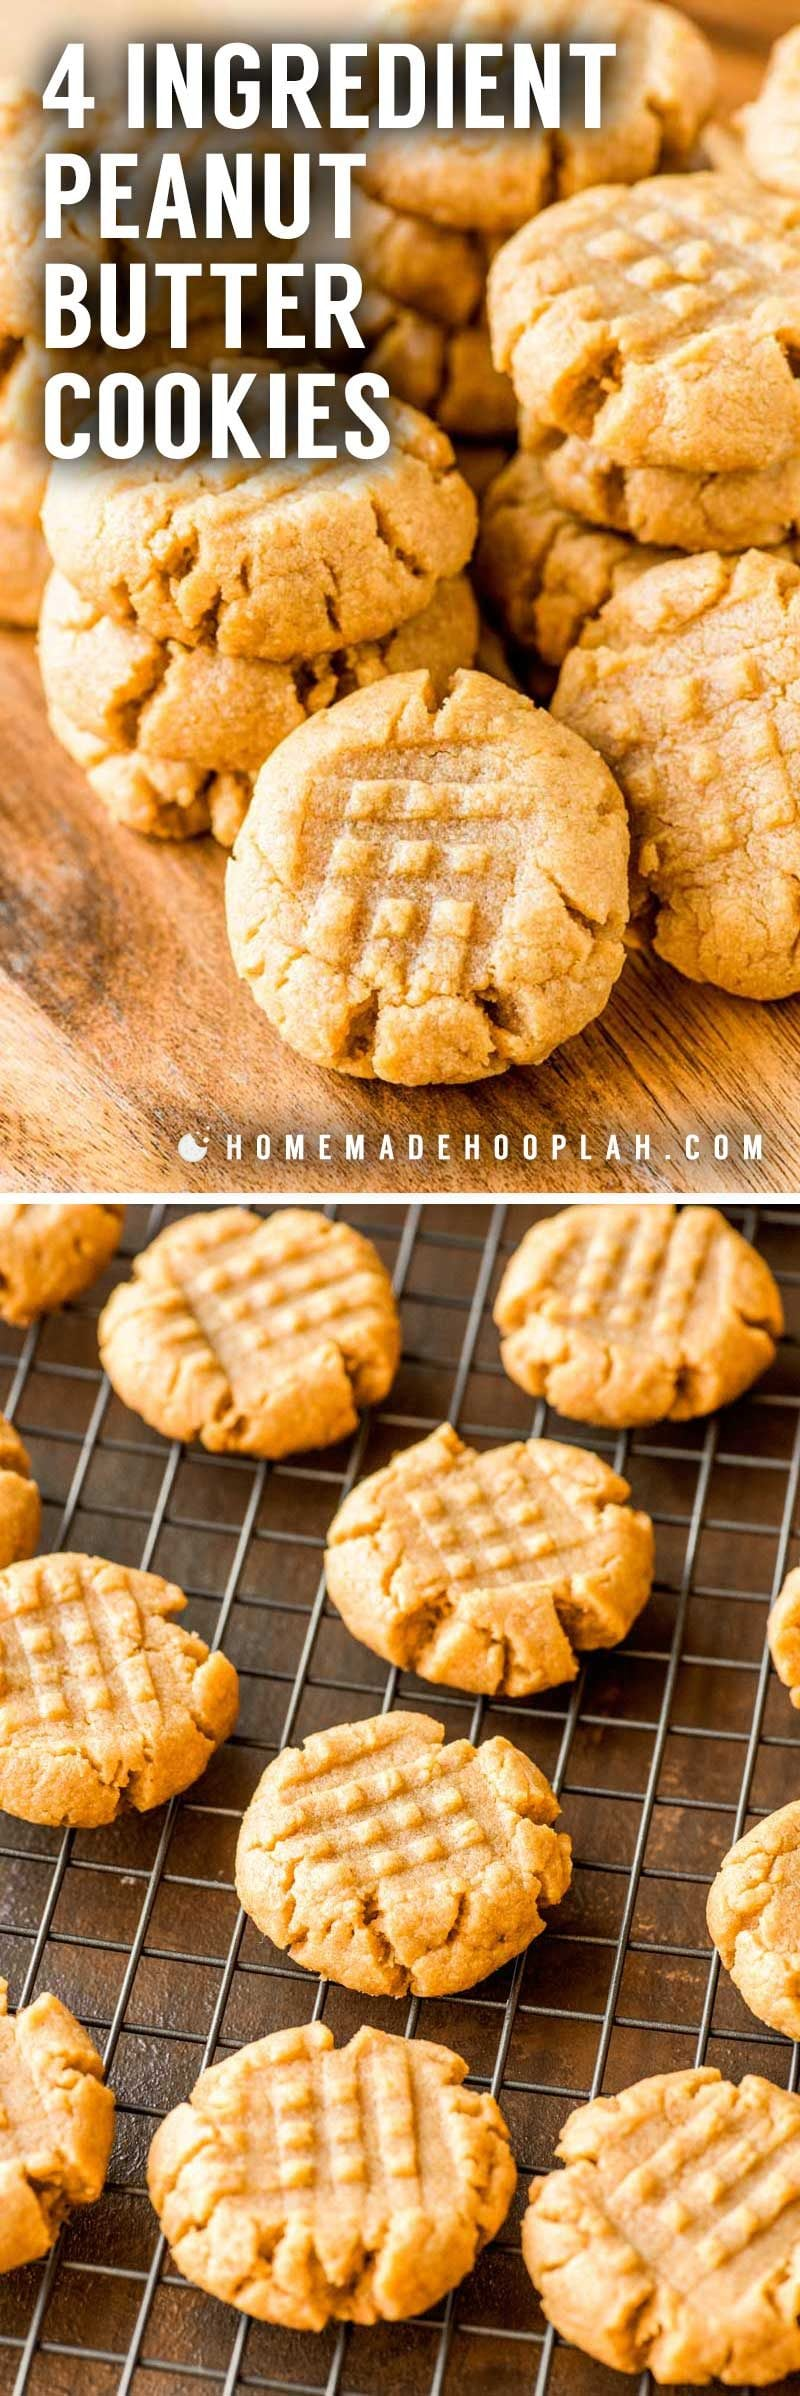 How to make peanut butter cookies with 4 ingredients